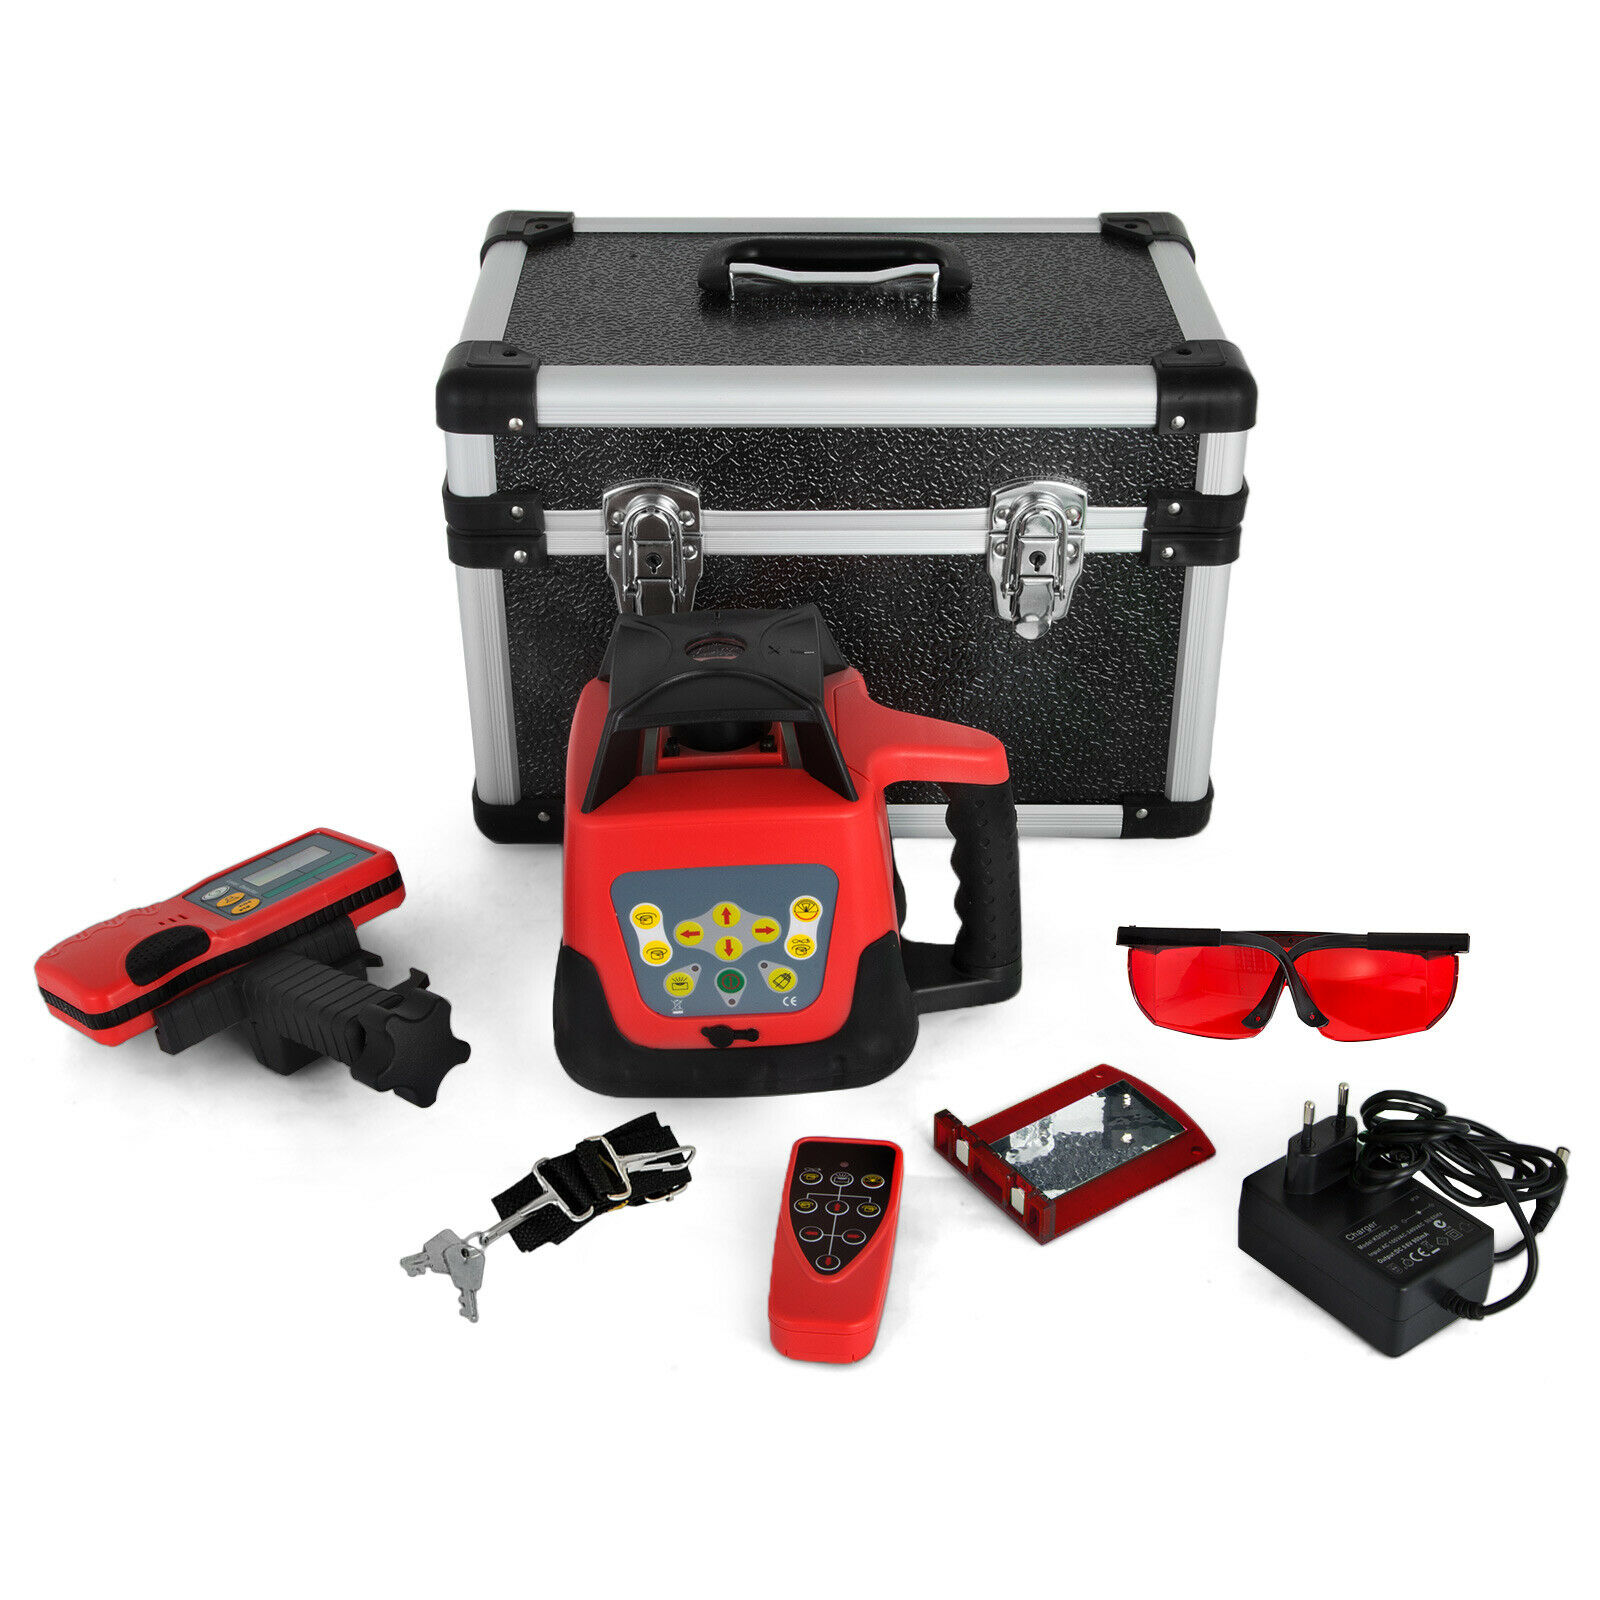 Rotary Laser Level Red Beam Self Leveling Measuring Automatic With Receiver Remote Control Carrying Case